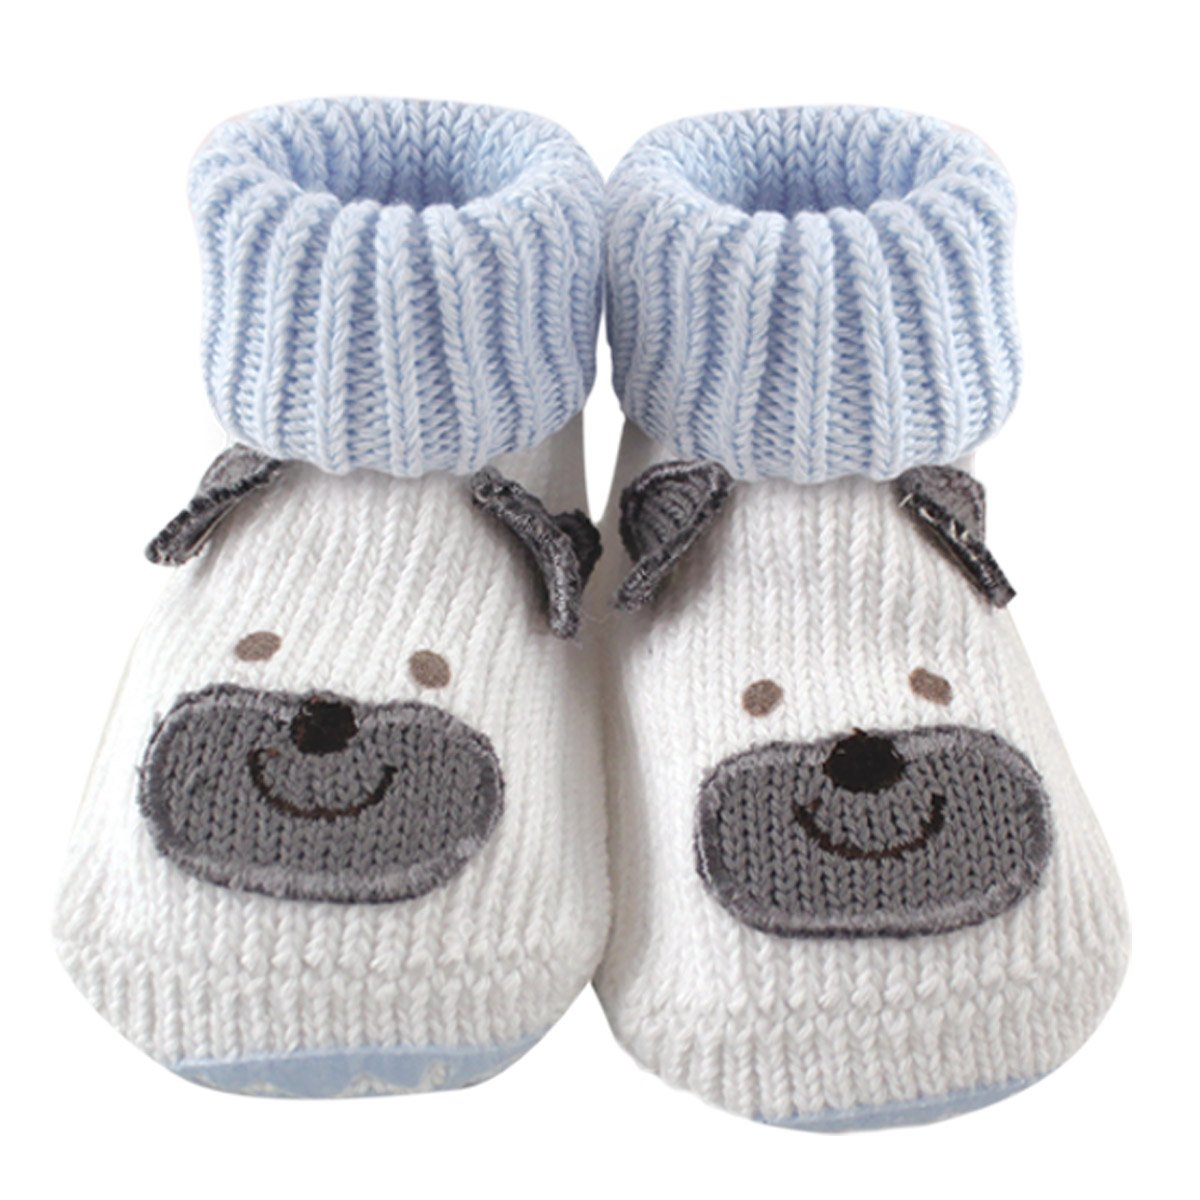 Luvable Friends Knitted Non-Skid Baby Slippers